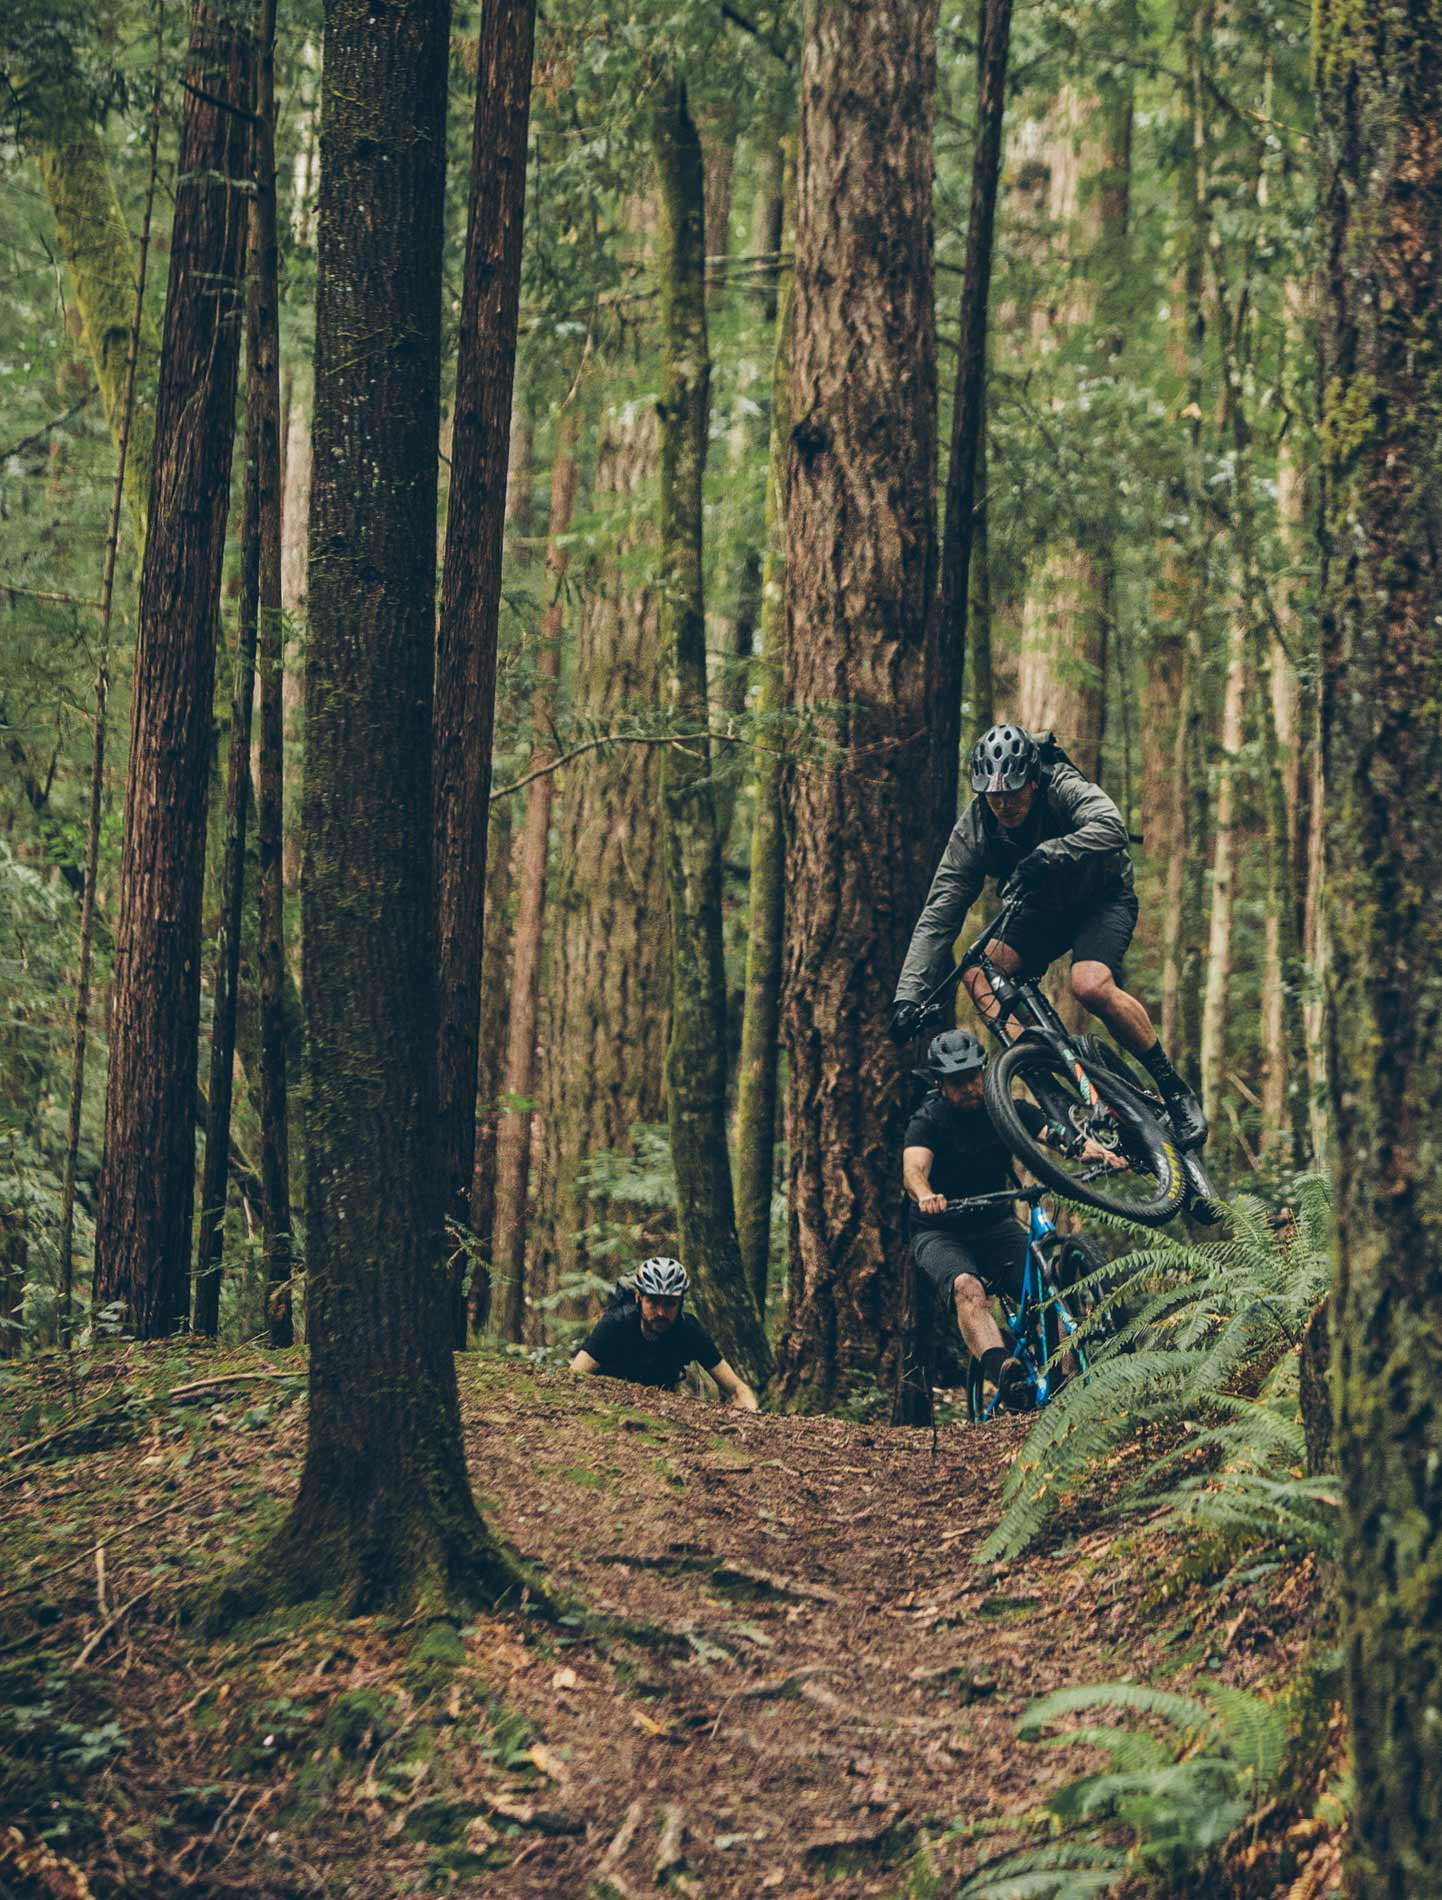 Riders take jumps through the woods on bike.